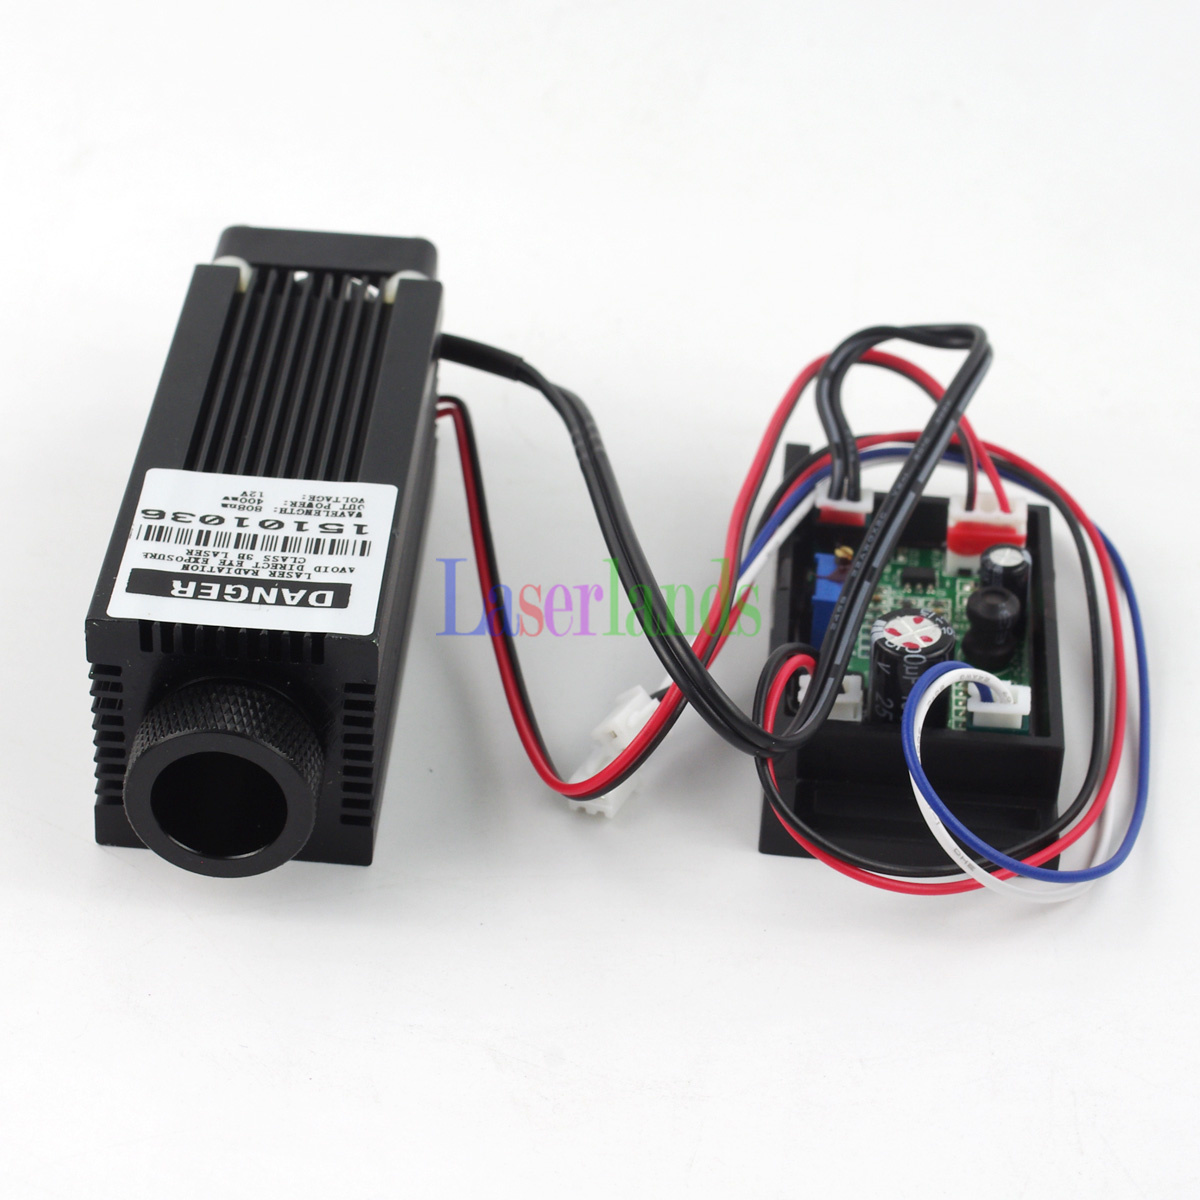 Focusable 800mW 0.8w 780nm 785nm Infrared IR Laser DOT Diode Module 12V TTL high quality 500mw 808nm 810nm ir laser module focusable infrared module with ttl driver board dc 12v input